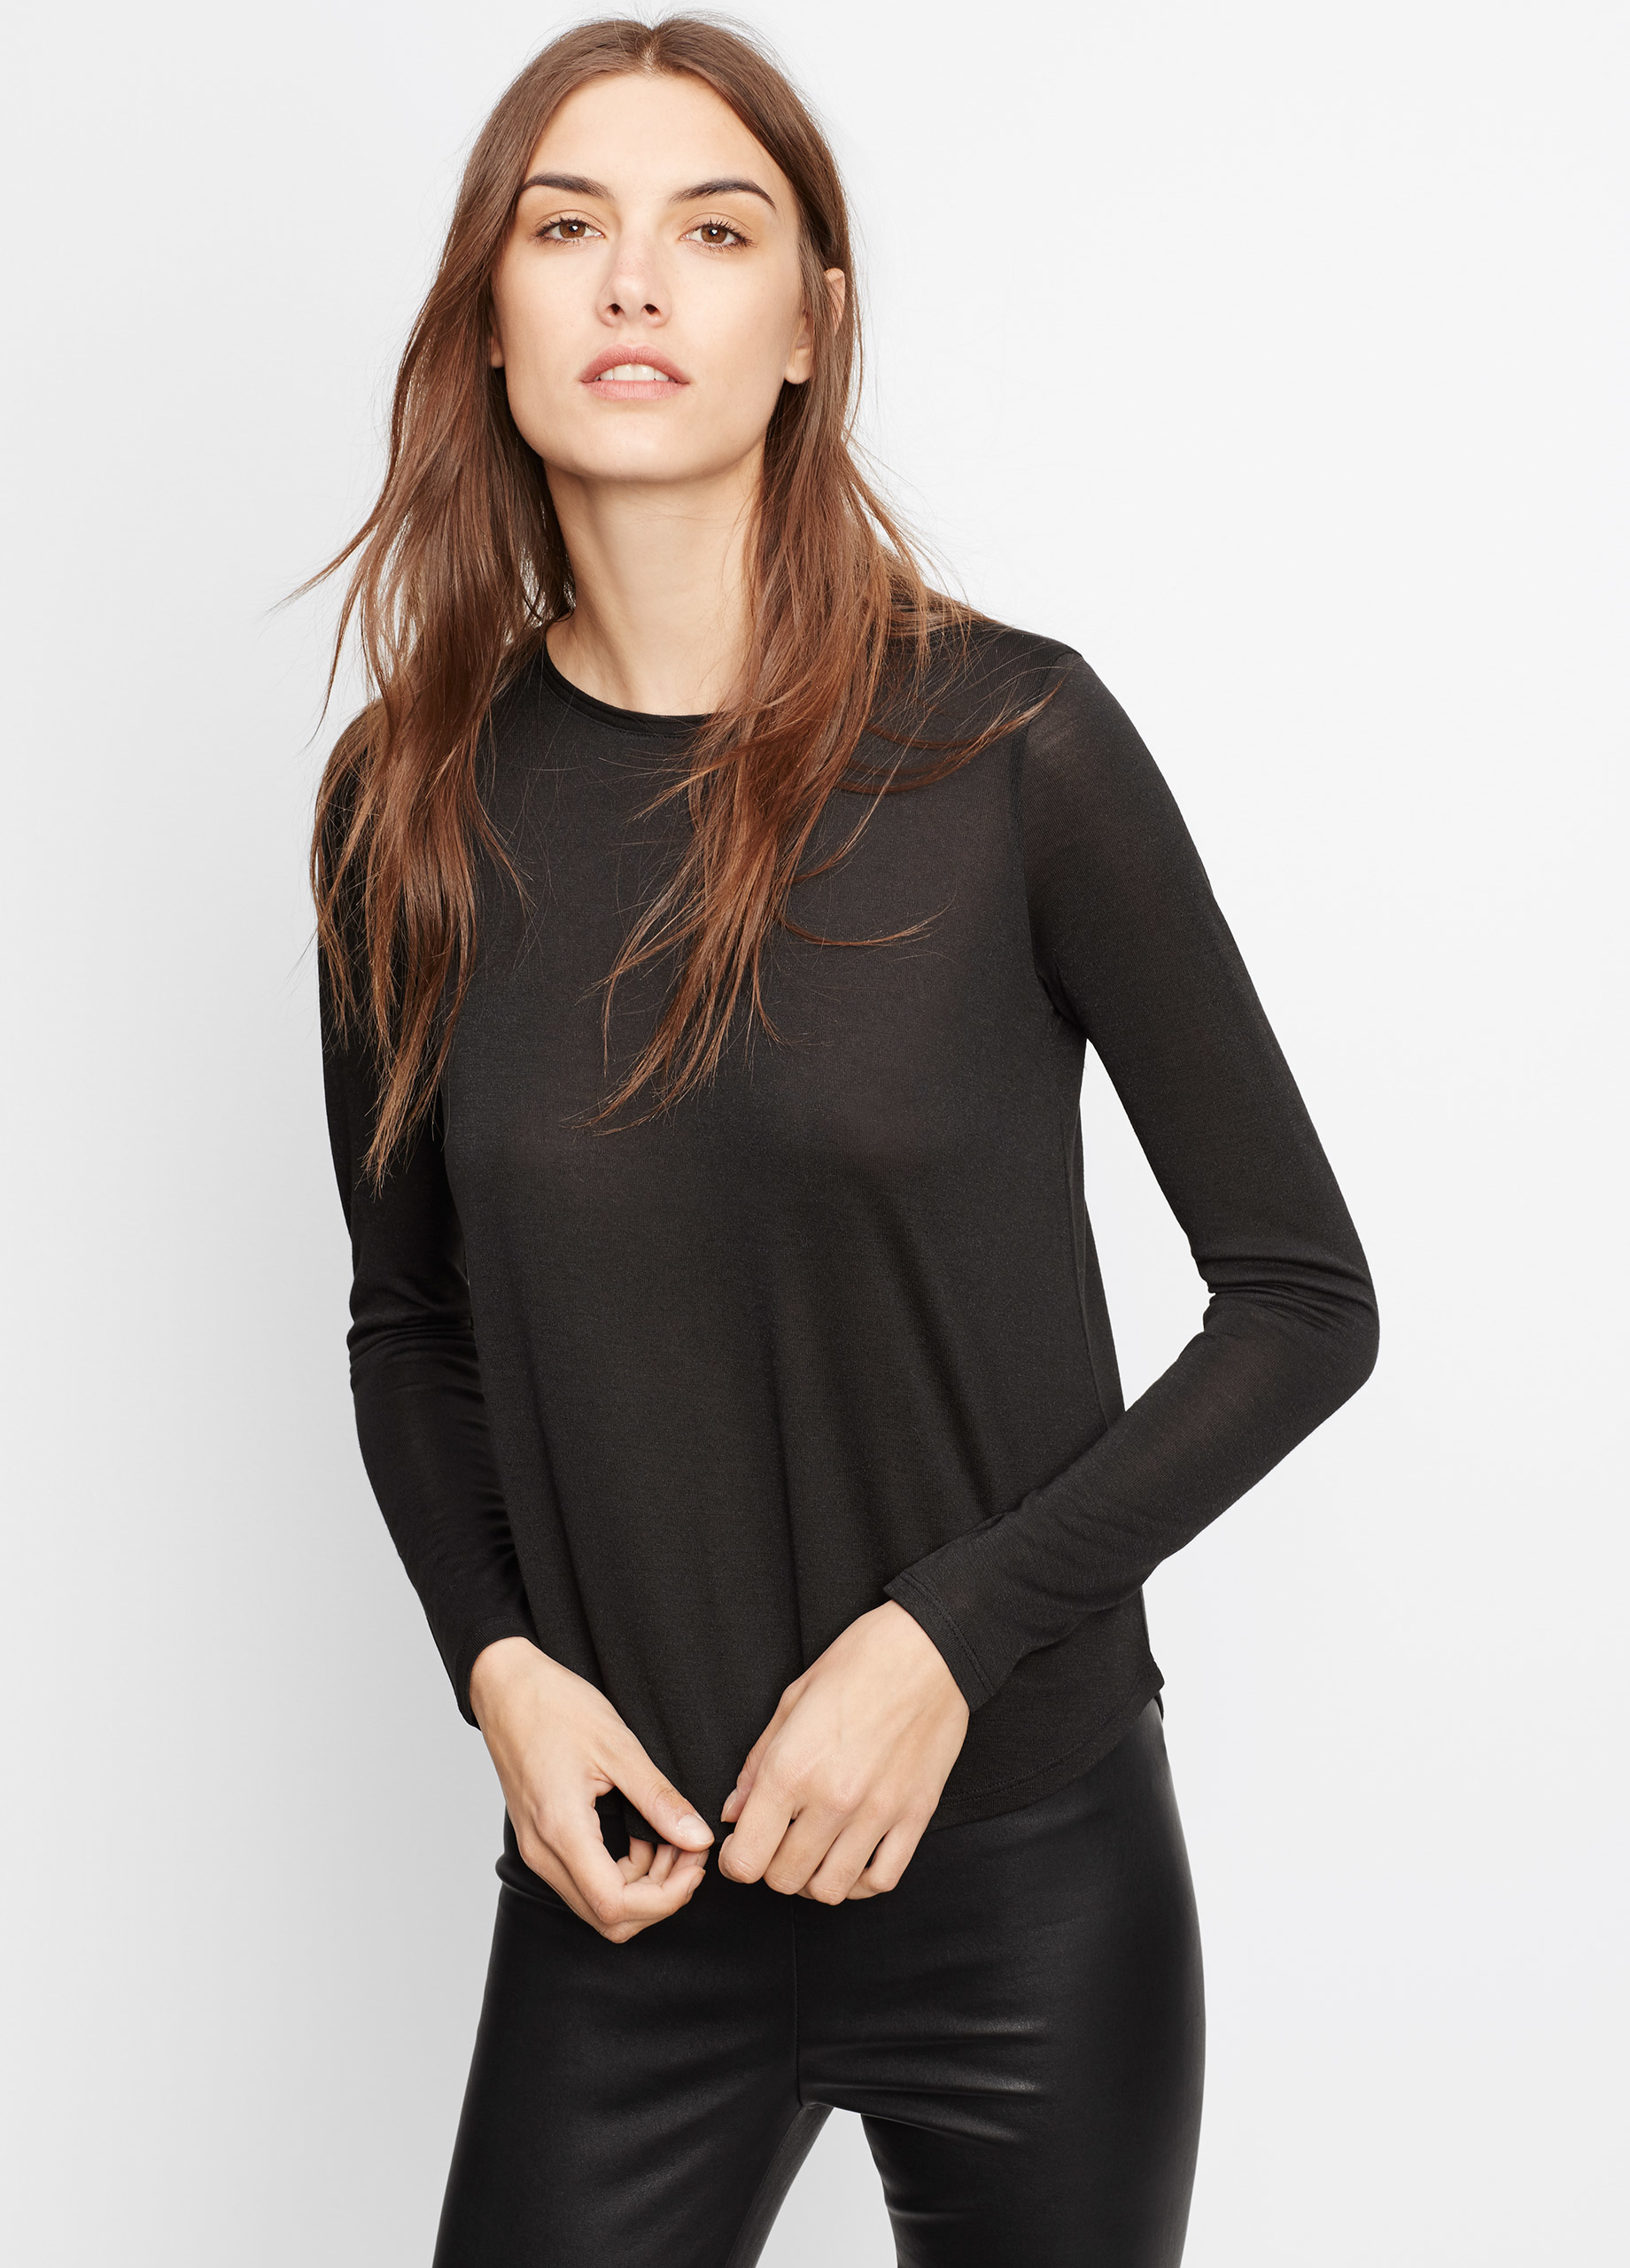 Vince shirttail long sleeve tee in black lyst for Vince tee shirts sale